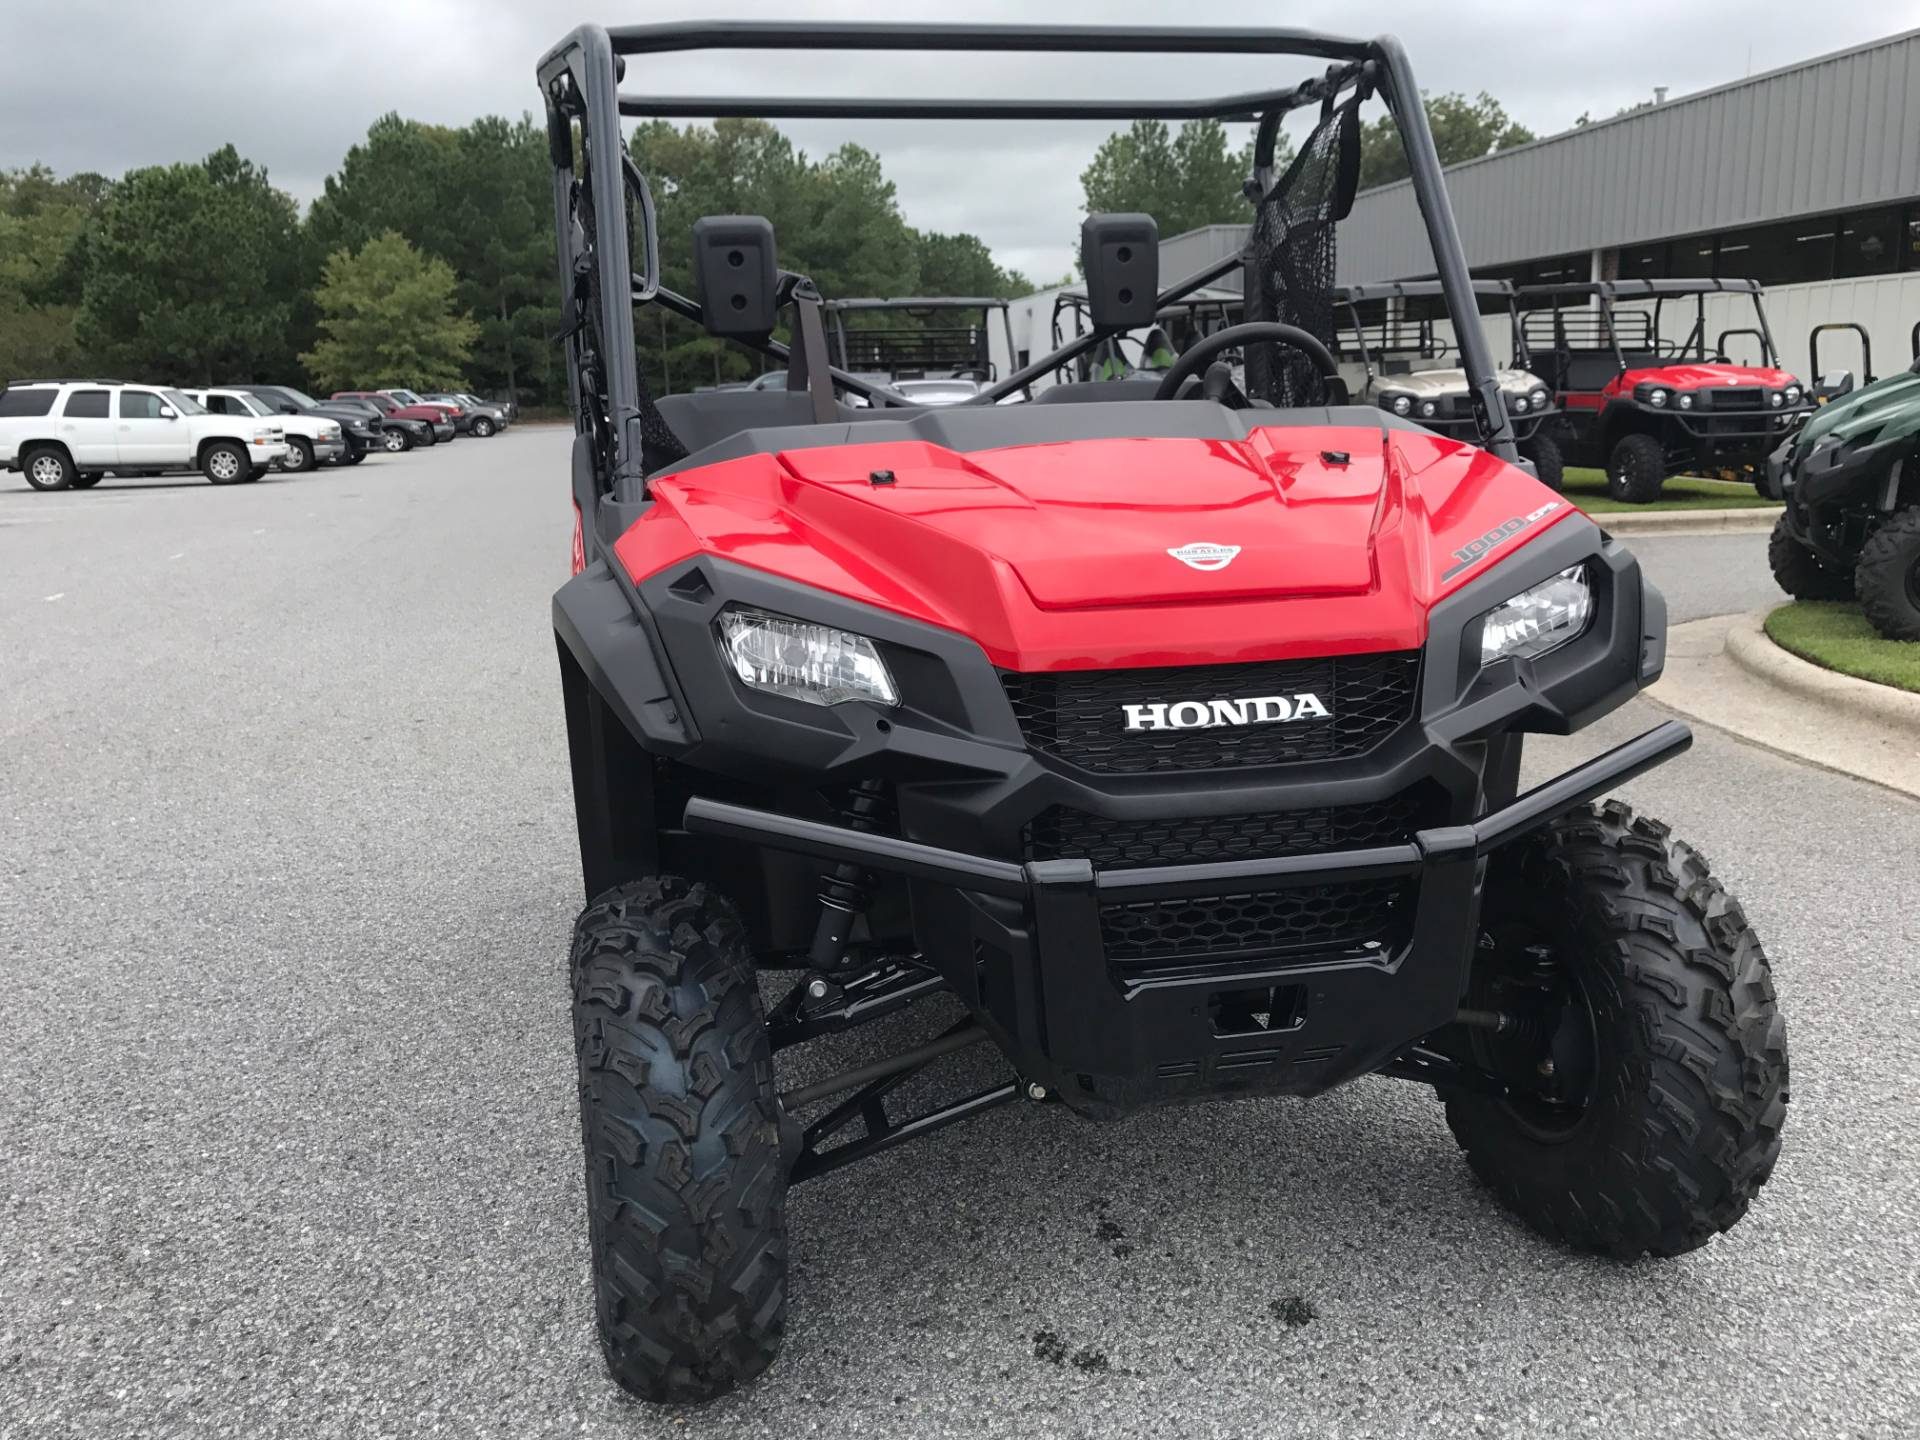 Scooters For Sale Greenville Nc >> 2017 Honda Pioneer 1000 EPS For Sale Greenville, NC : 69963